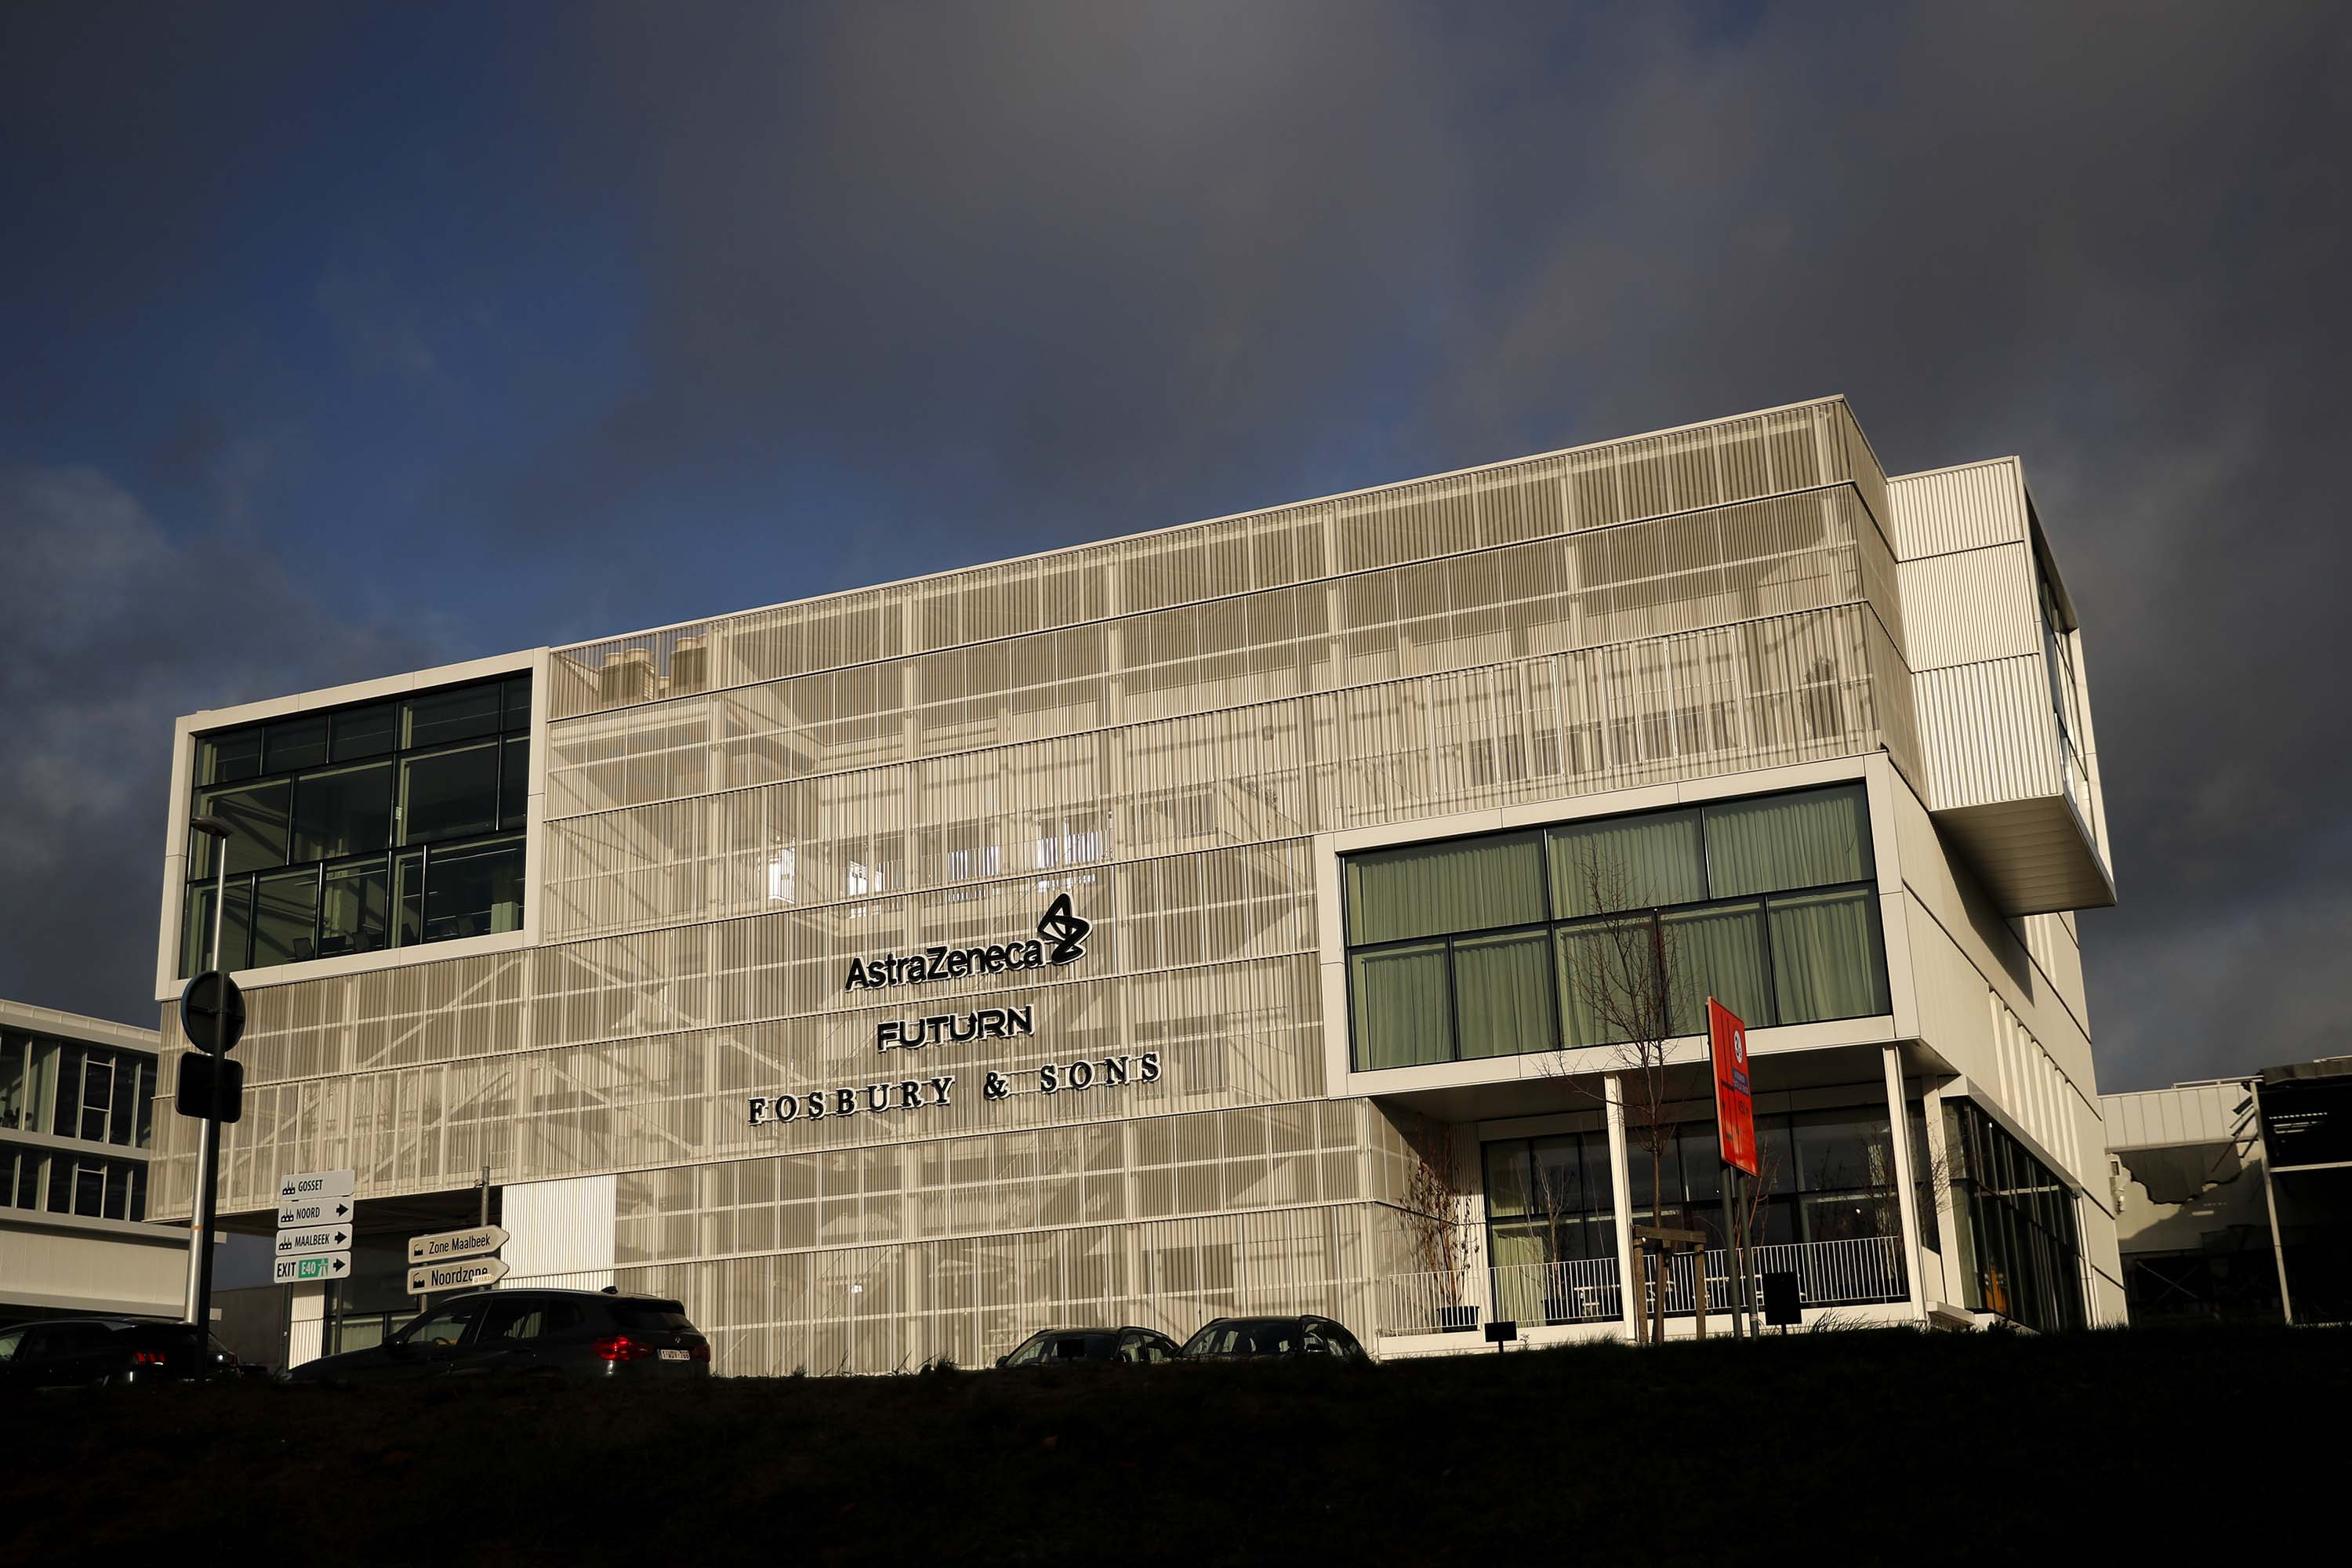 An AstraZeneca office building is pictured in Brussels, Belgium, on Friday, January 29.